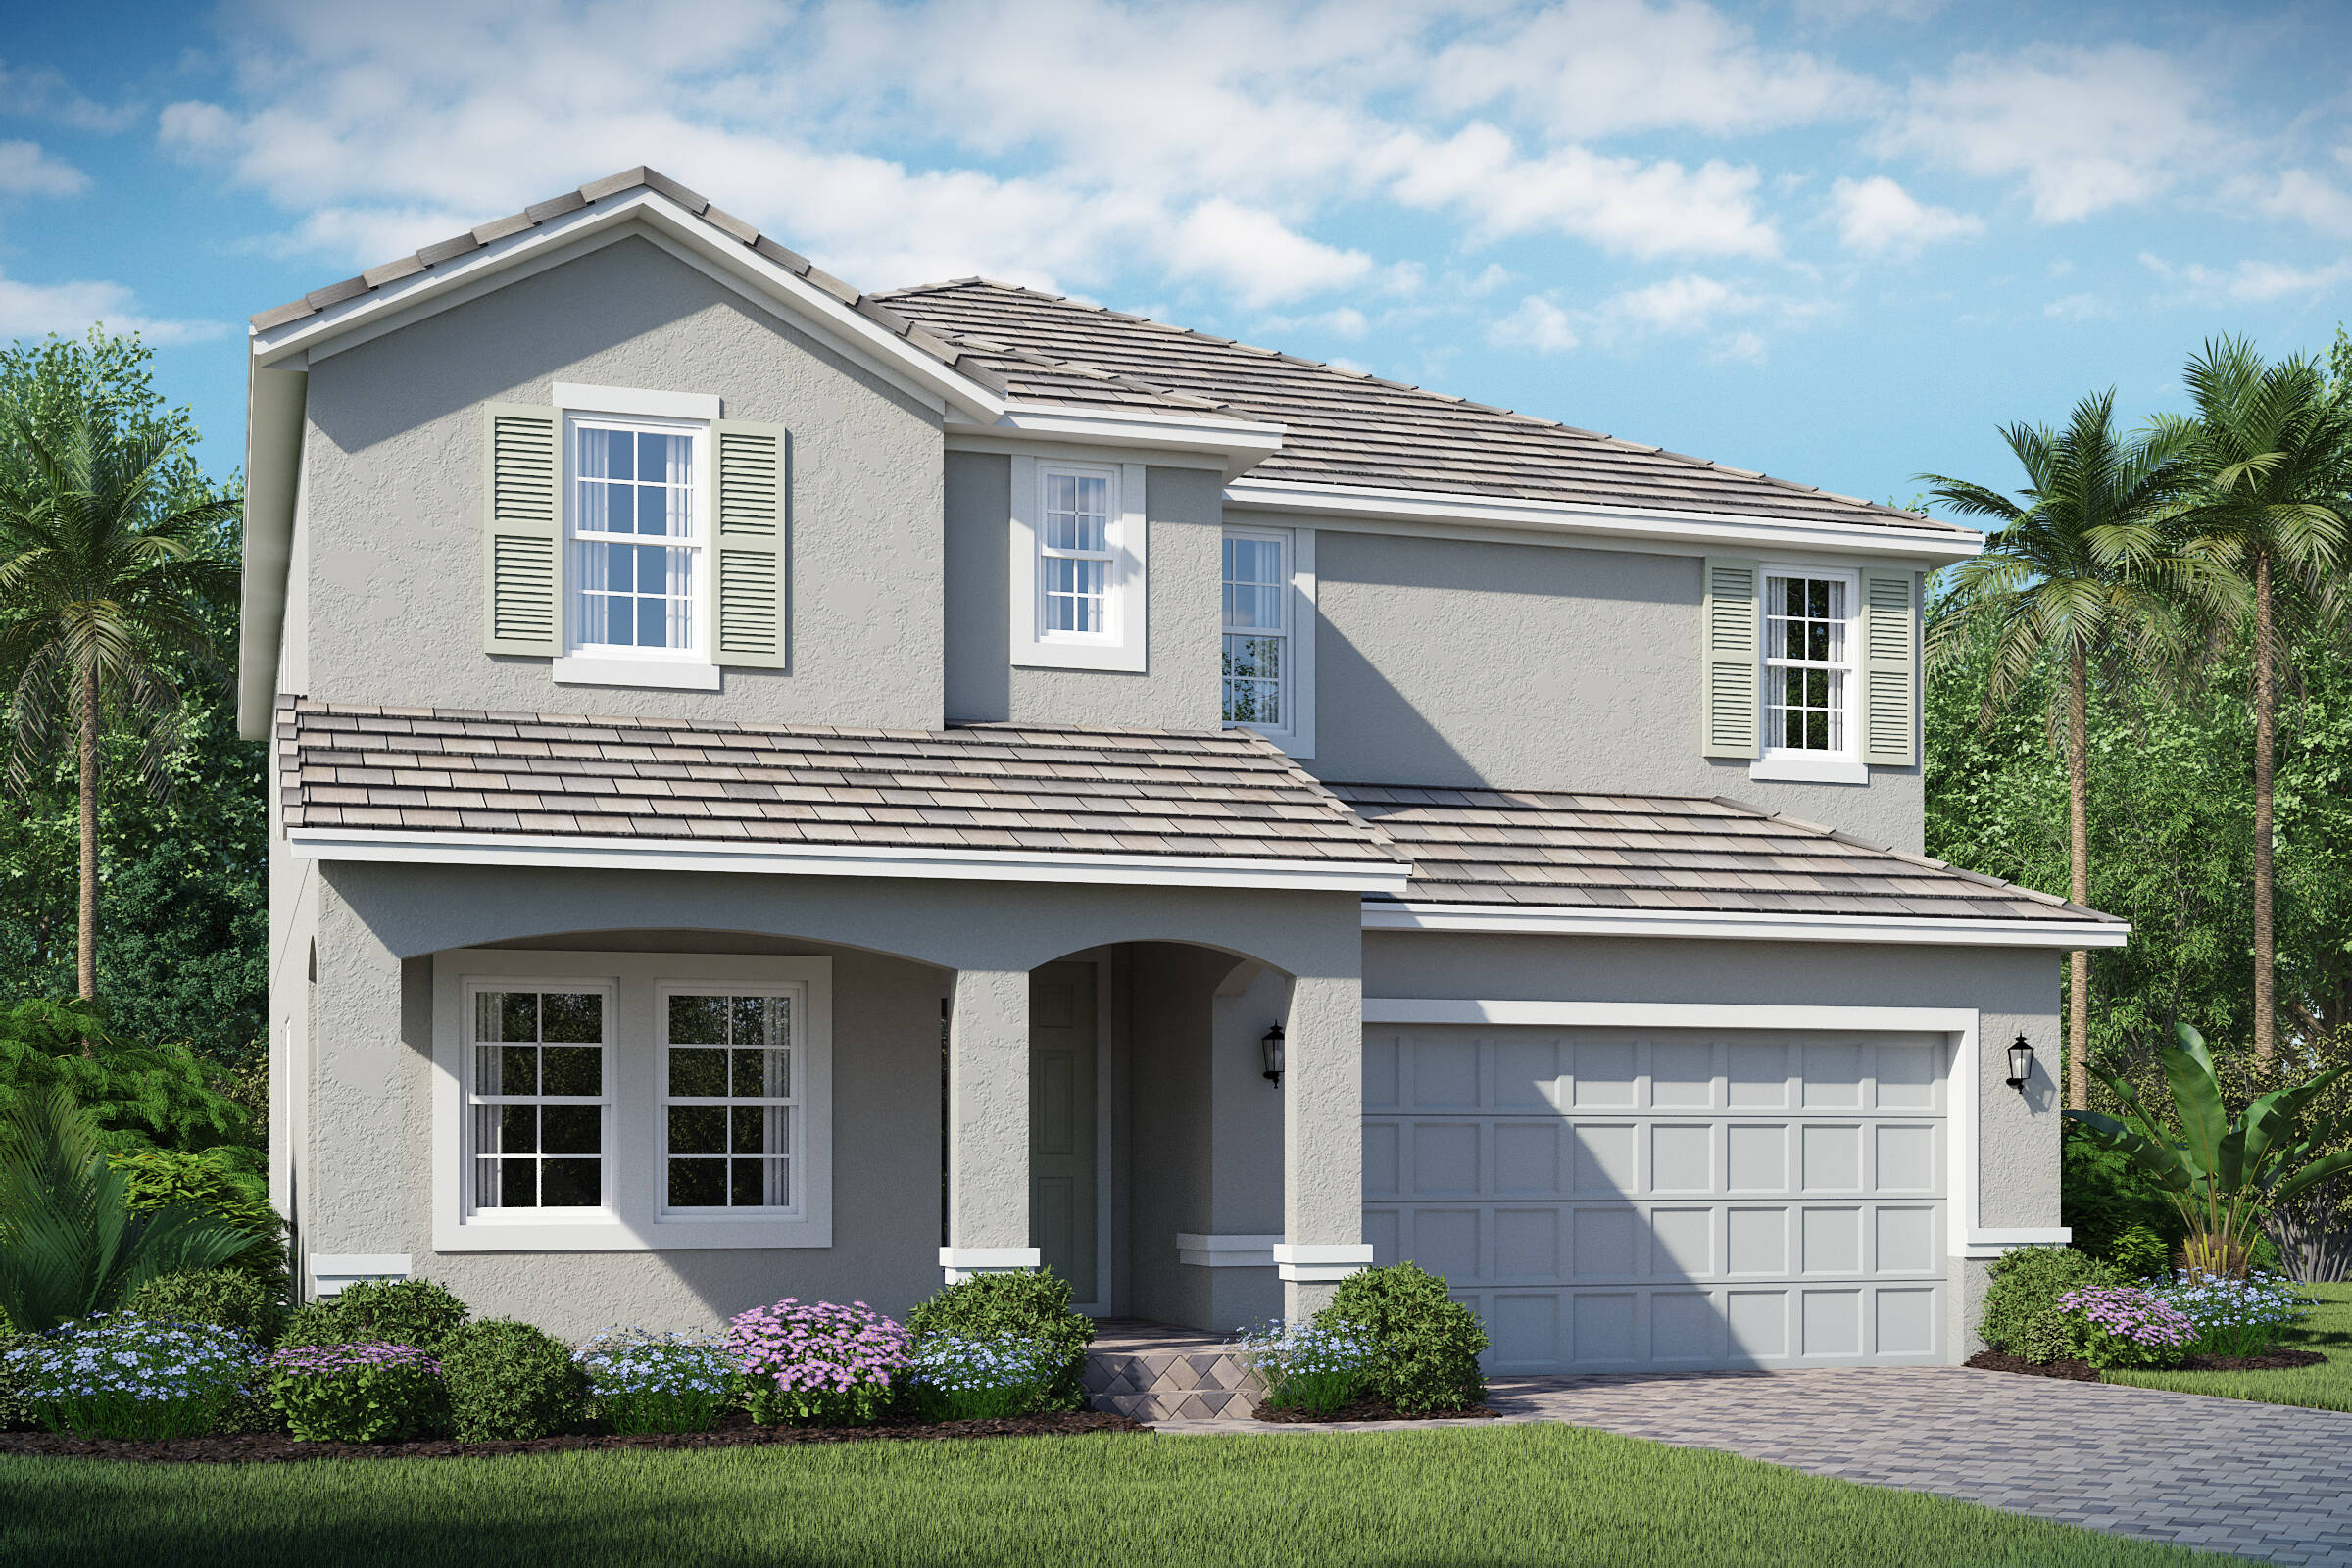 Michelson B exterior lake florence preserve new homes in orlando